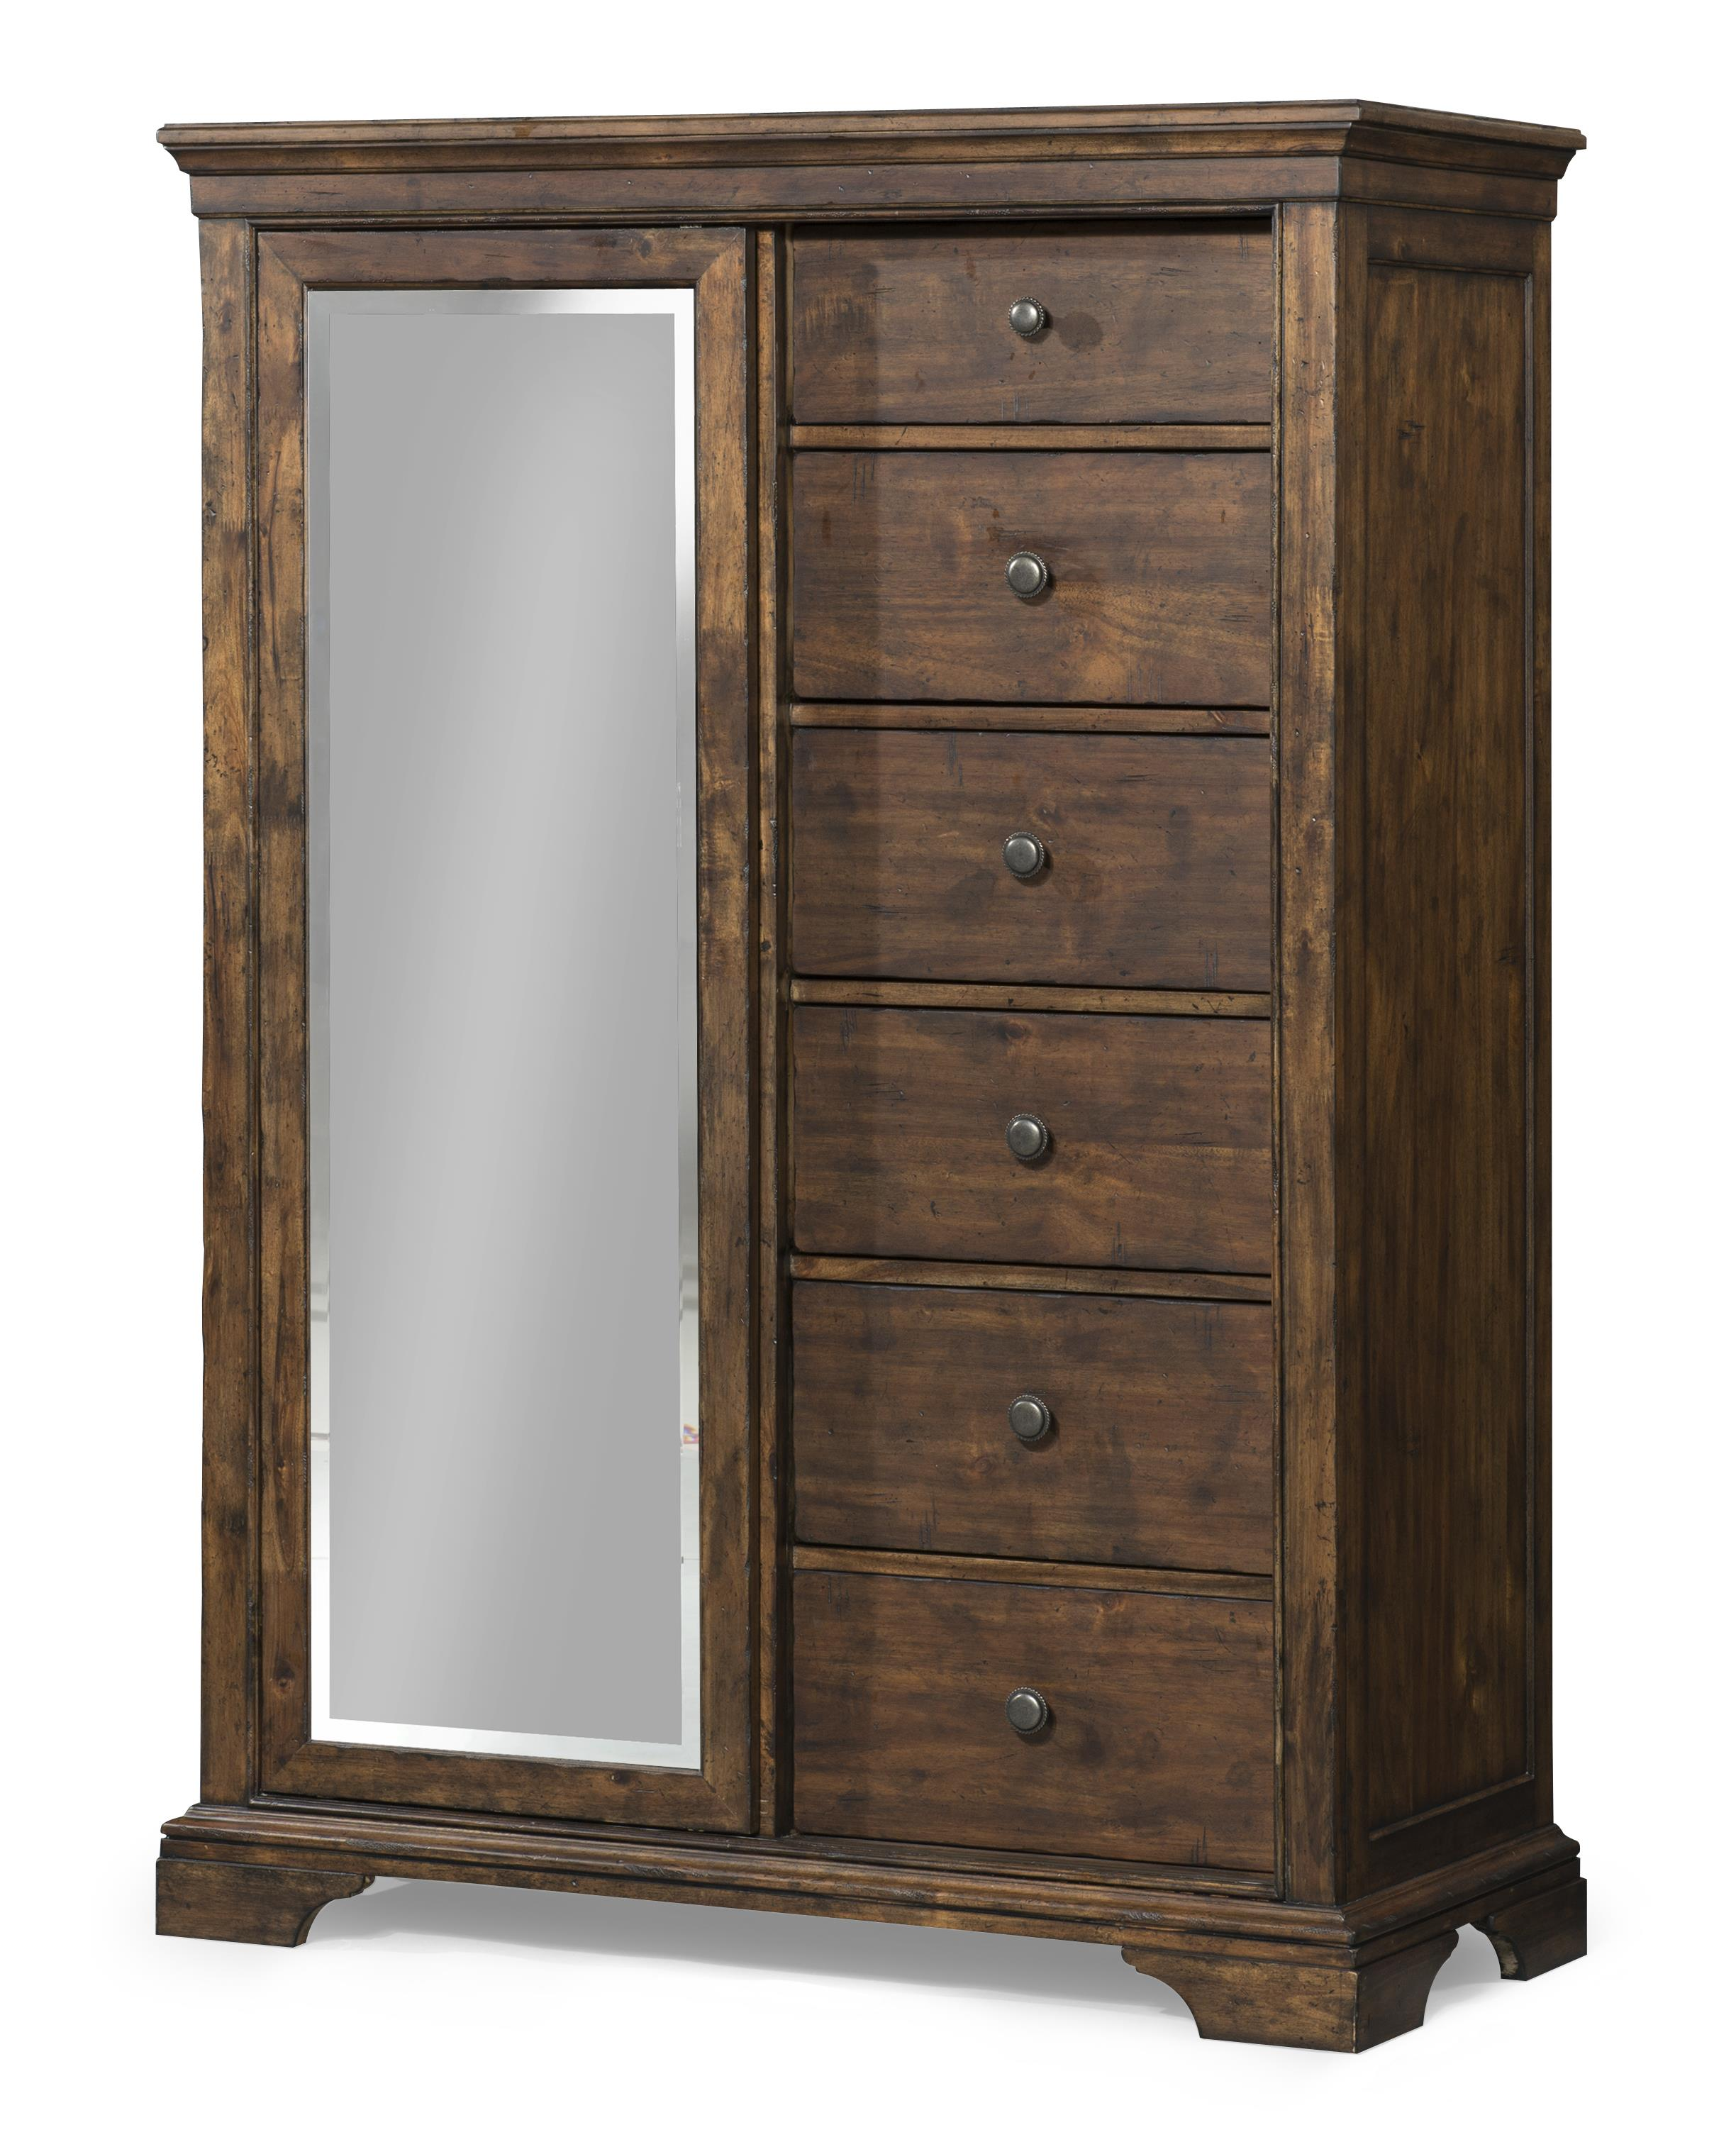 Trisha yearwood home collection by klaussner trisha for Home collection furniture